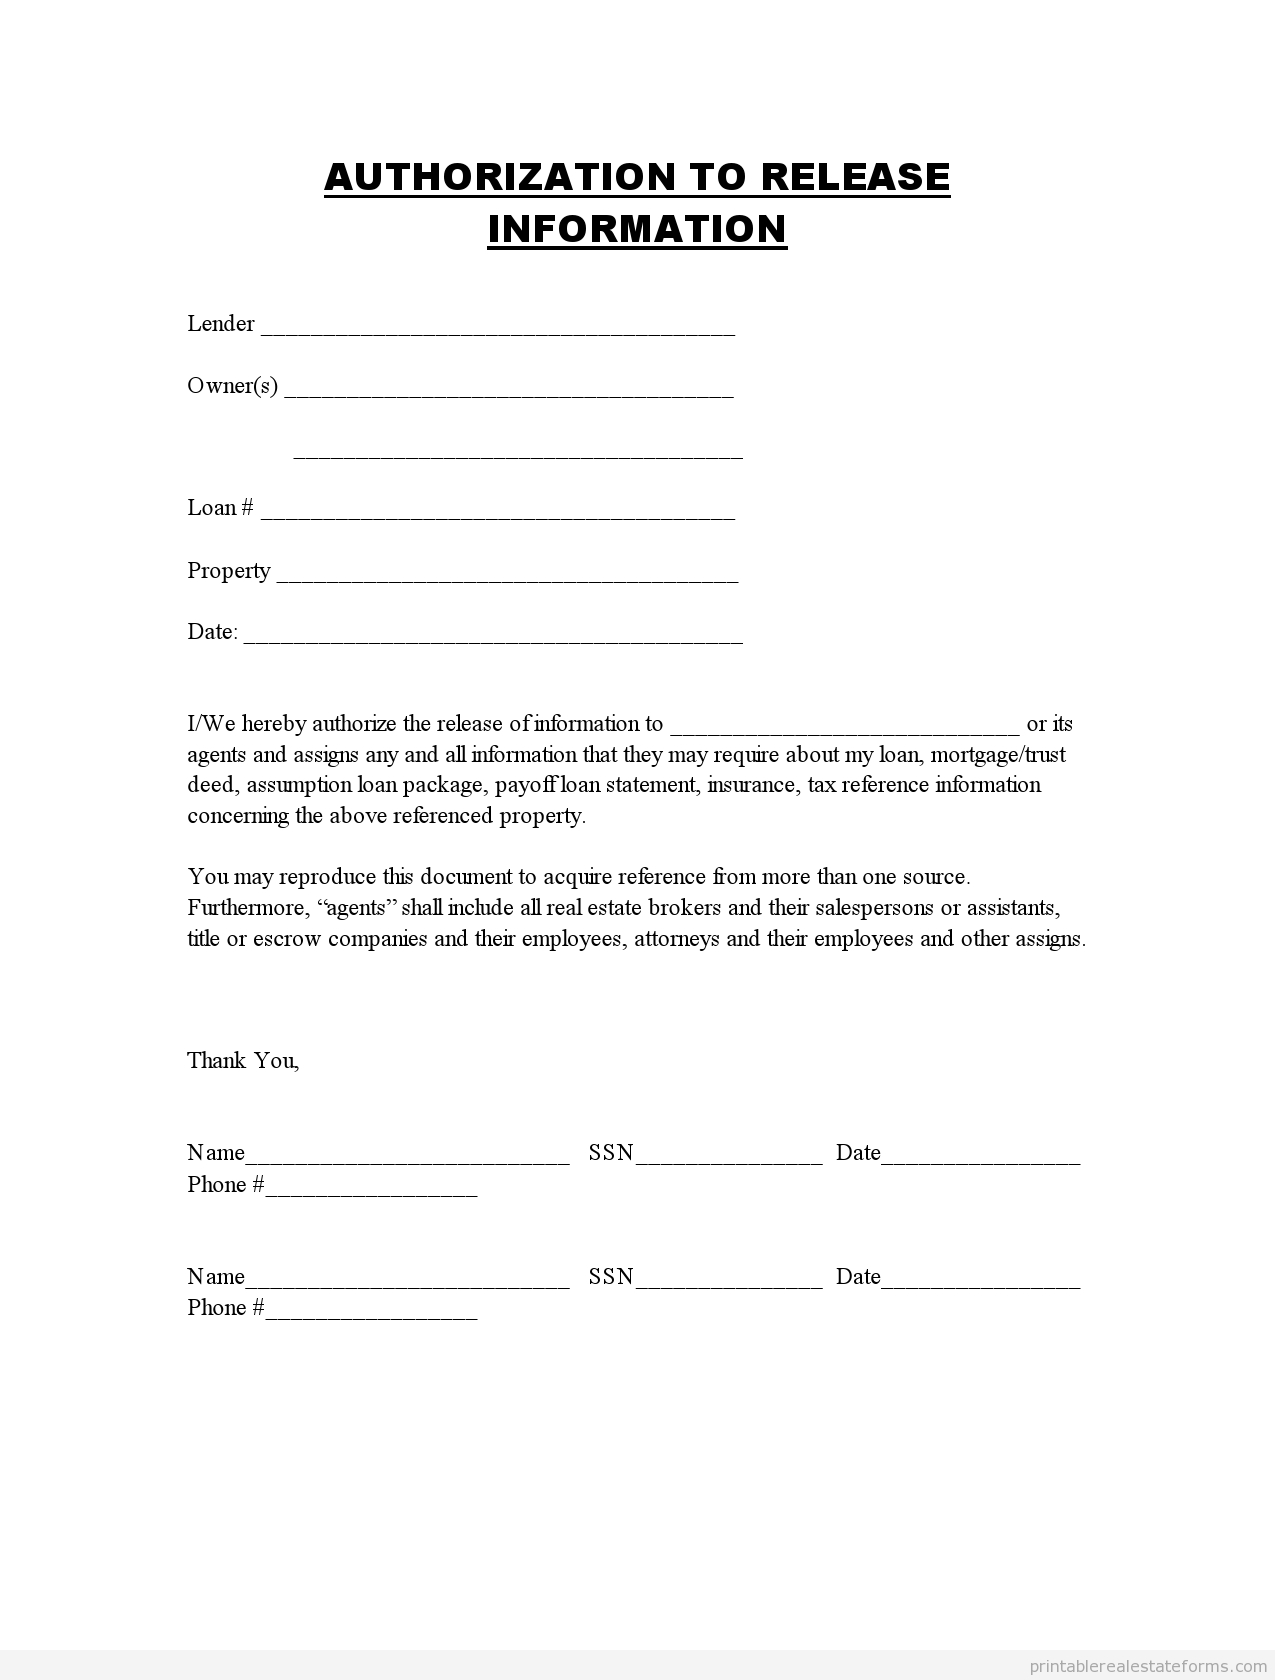 Printable Authorization To Release Information Template 2015 - Free Printable Photo Release Form